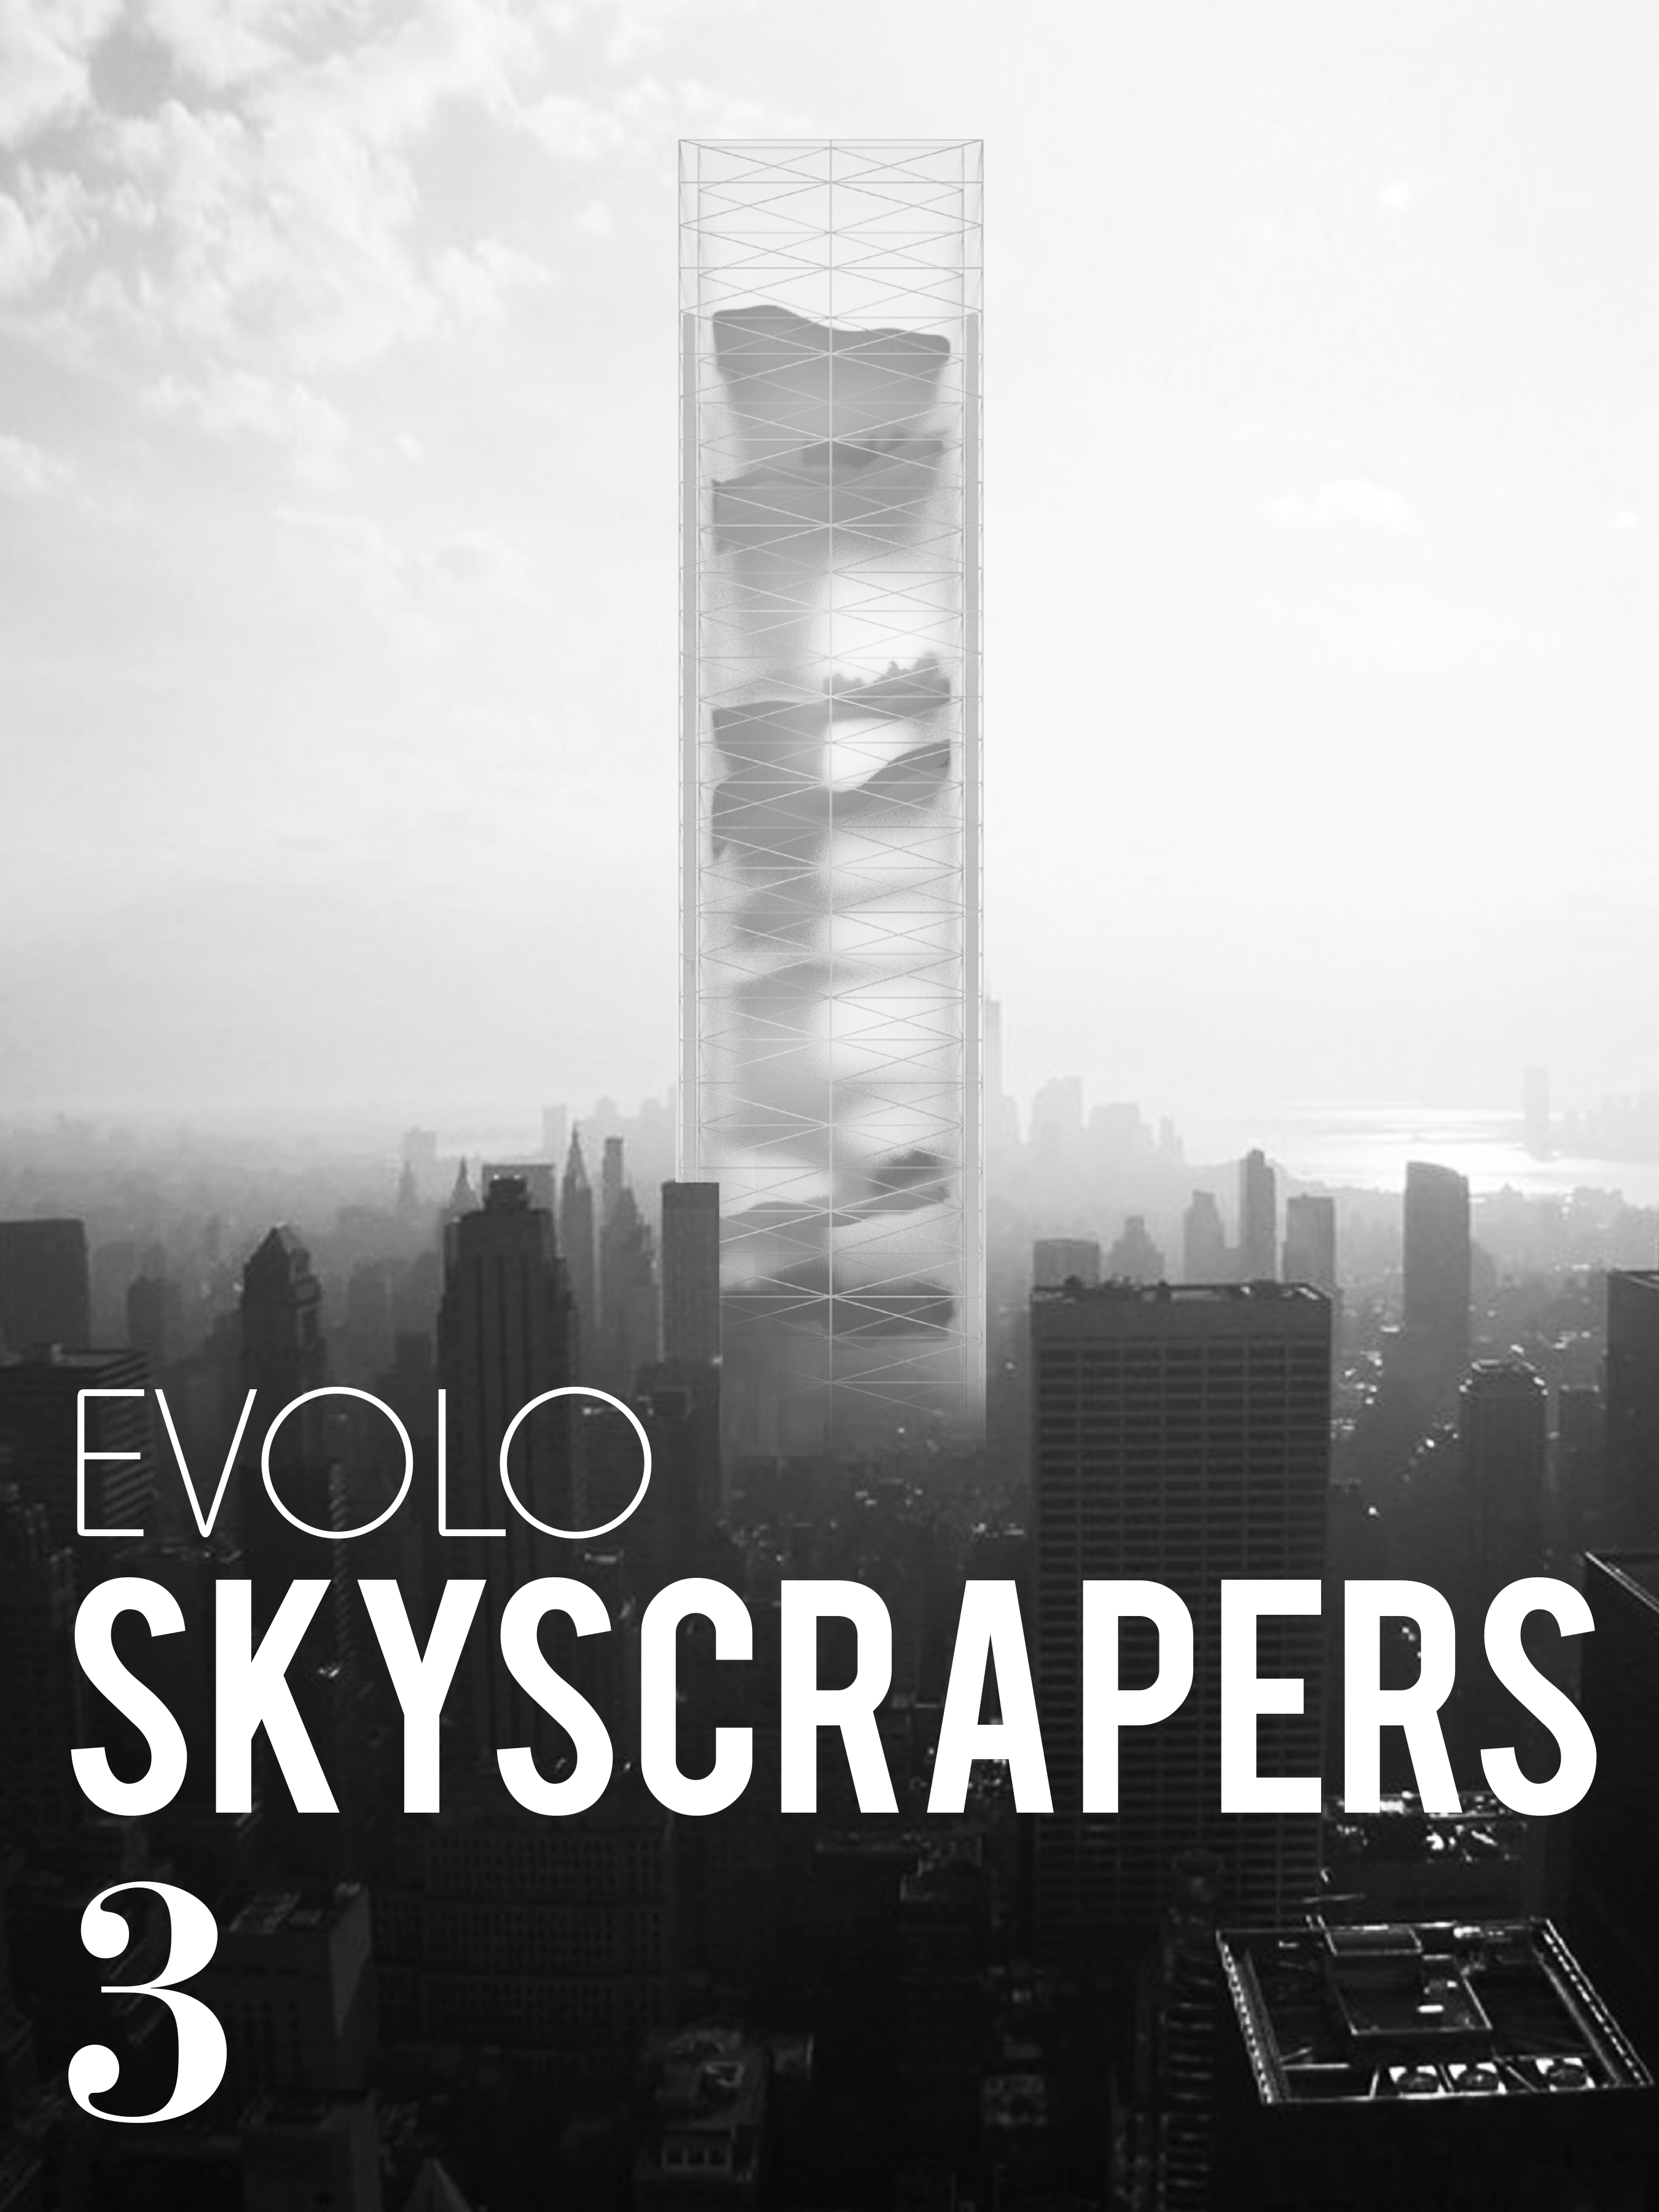 evolo skyscrapers 3 limited edition book evolo. Black Bedroom Furniture Sets. Home Design Ideas